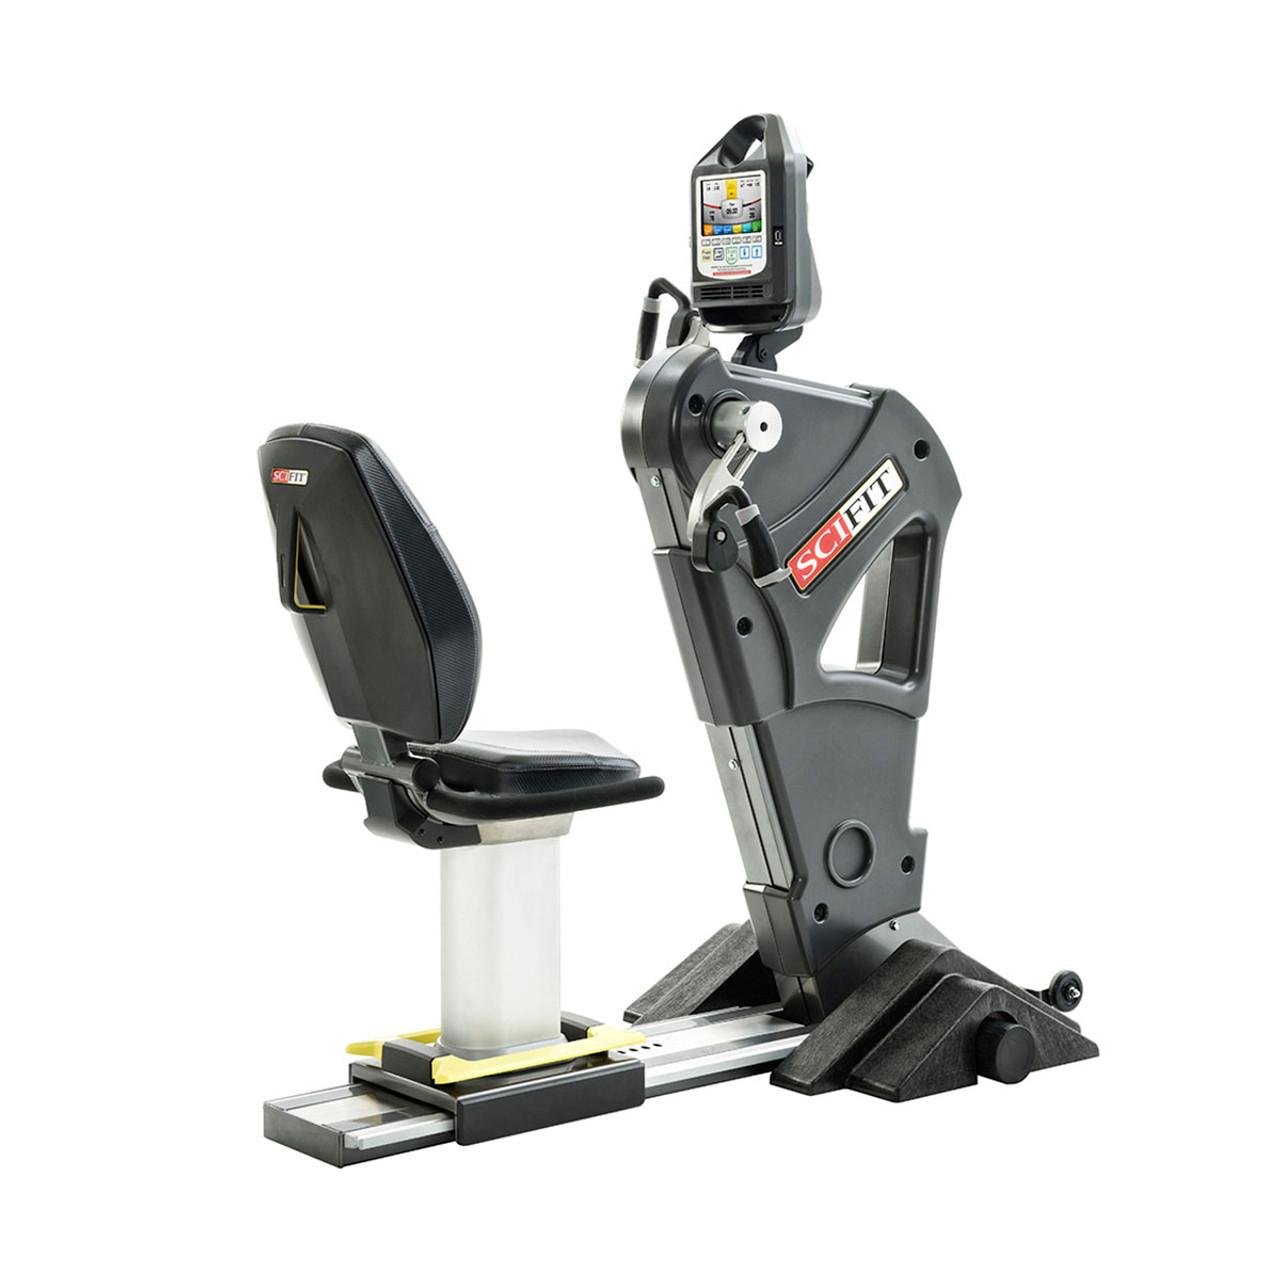 SciFit PRO1000 Sport Upper Body Exerciser - Fixed Cranks - Low Back/ Fixed Height Seat